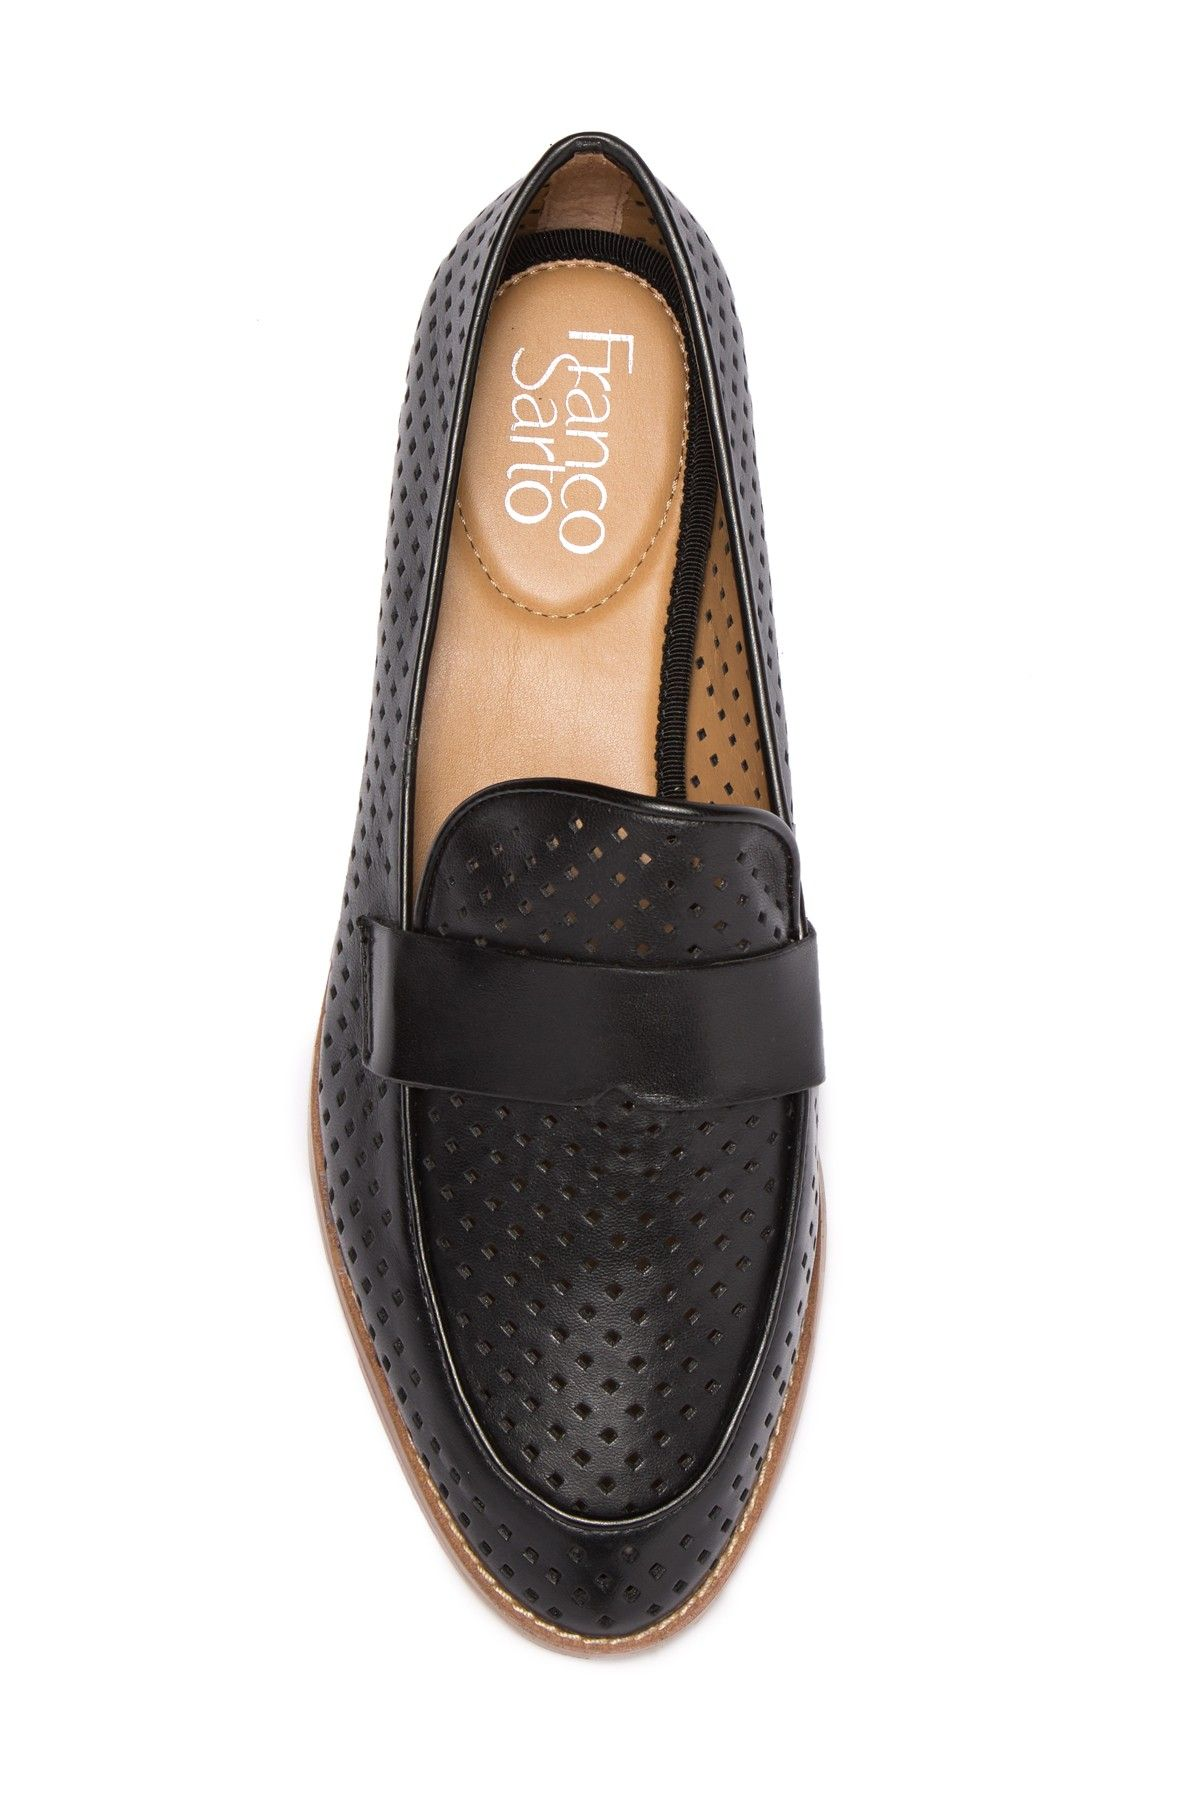 fcaa266574d Hudley Perforated Loafer by Franco Sarto on  nordstrom rack